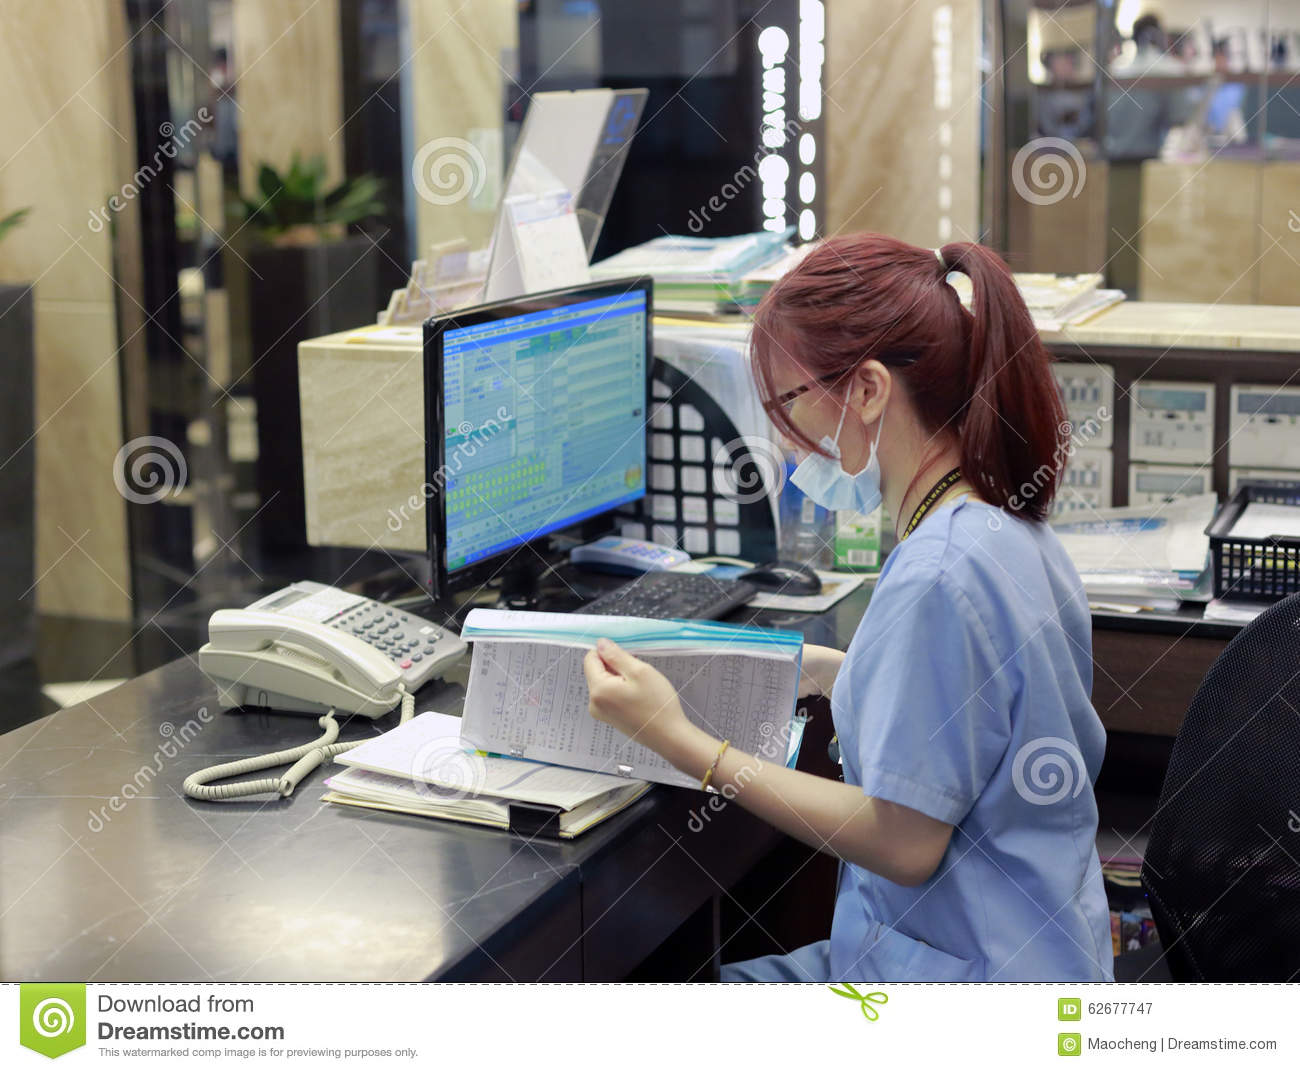 Staff of abc dental hospital working next to computer